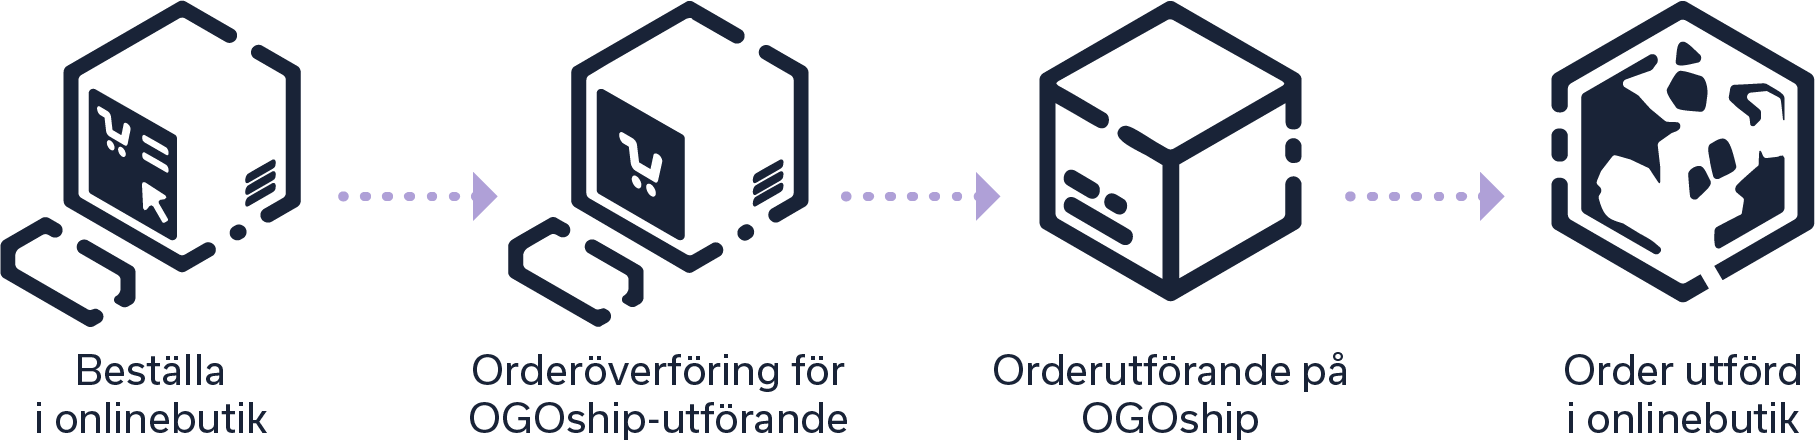 ogoship-order-fulfillment-sv